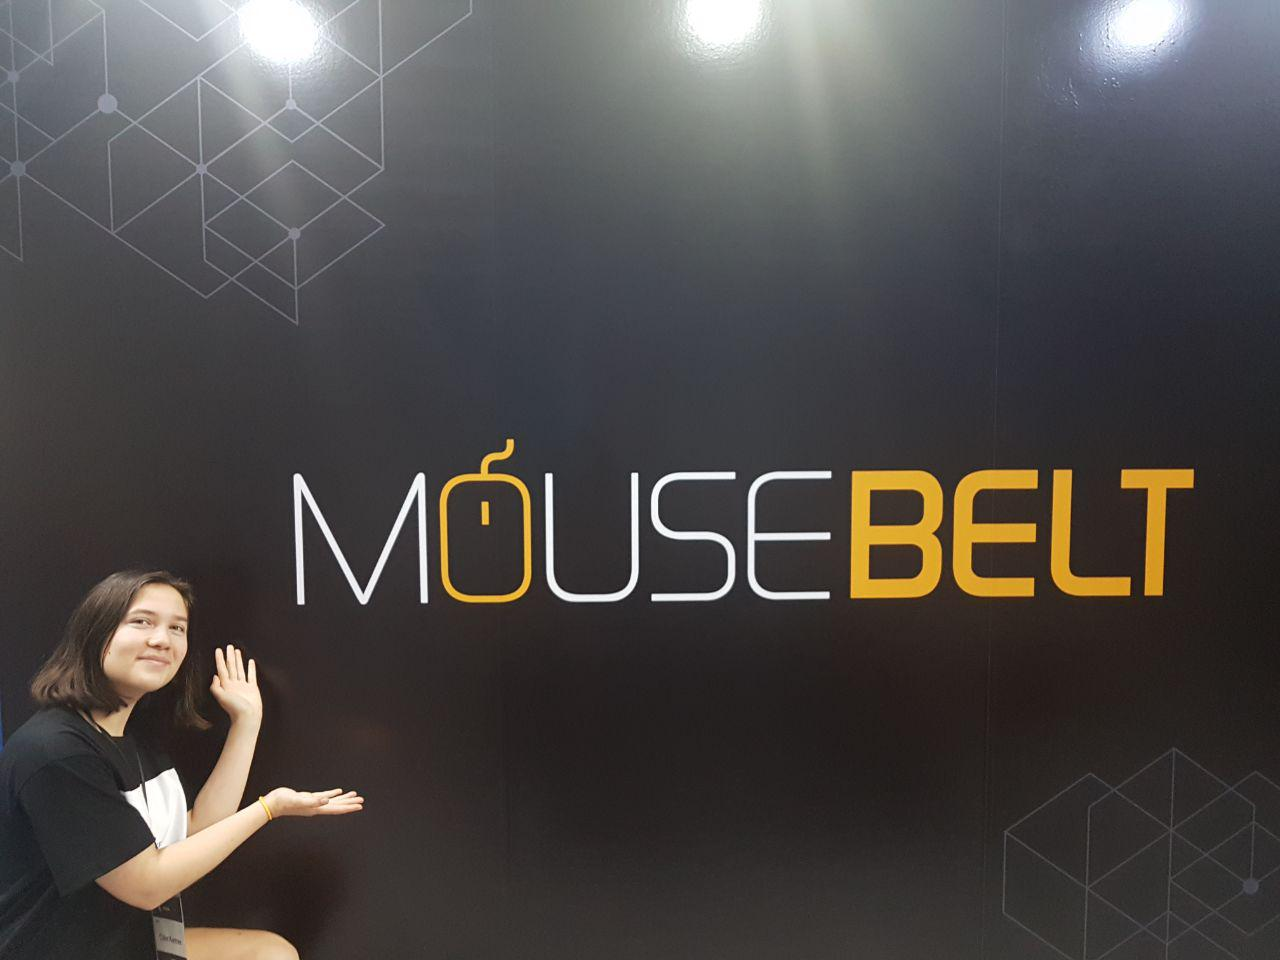 mousebelt-claire